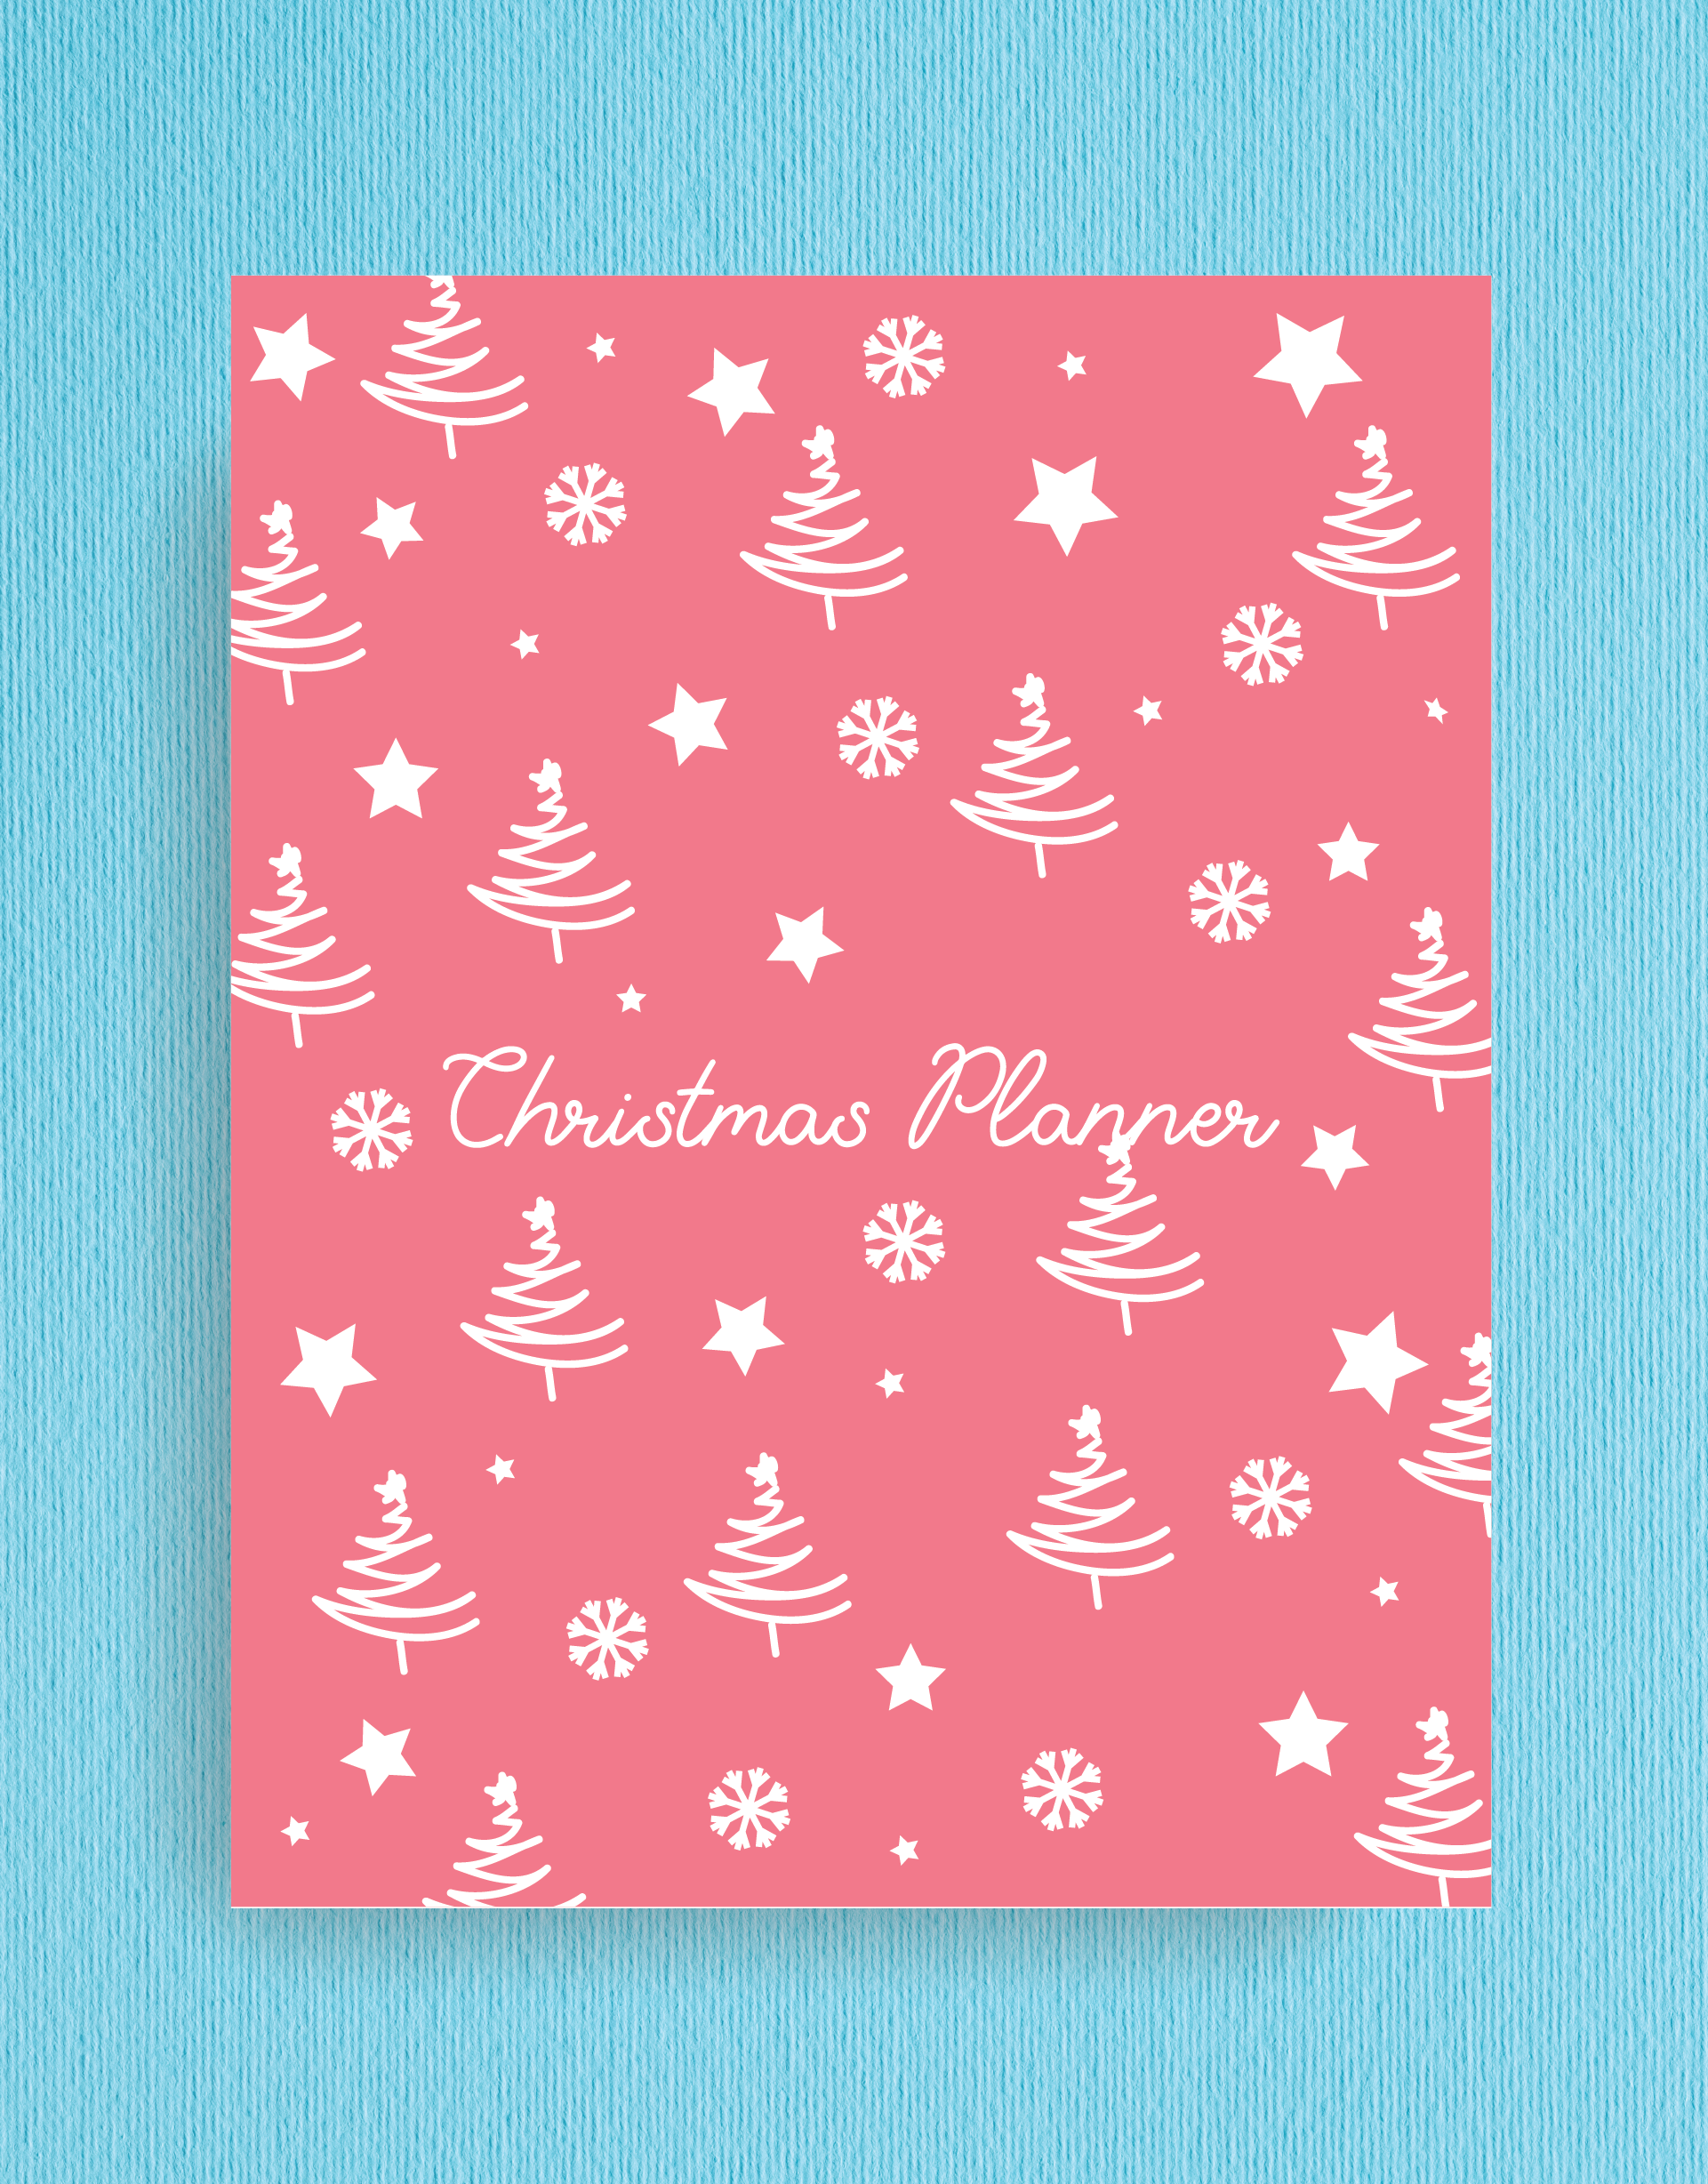 Printable Christmas Planner To Organize the holidays